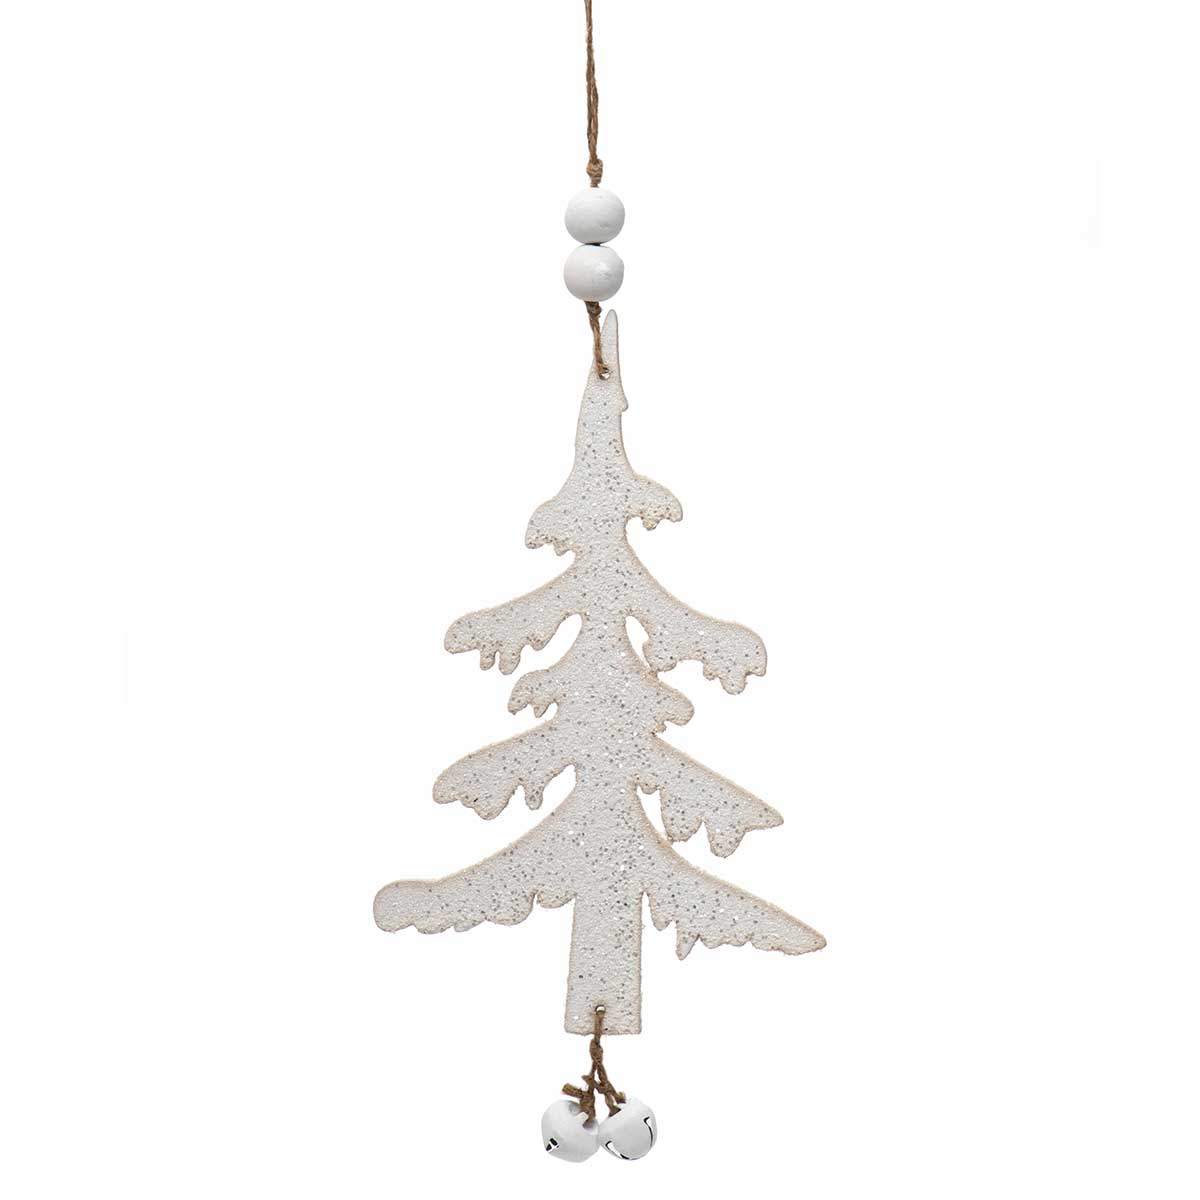 WHITE WOOD TREE DANGLE ORNAMENT